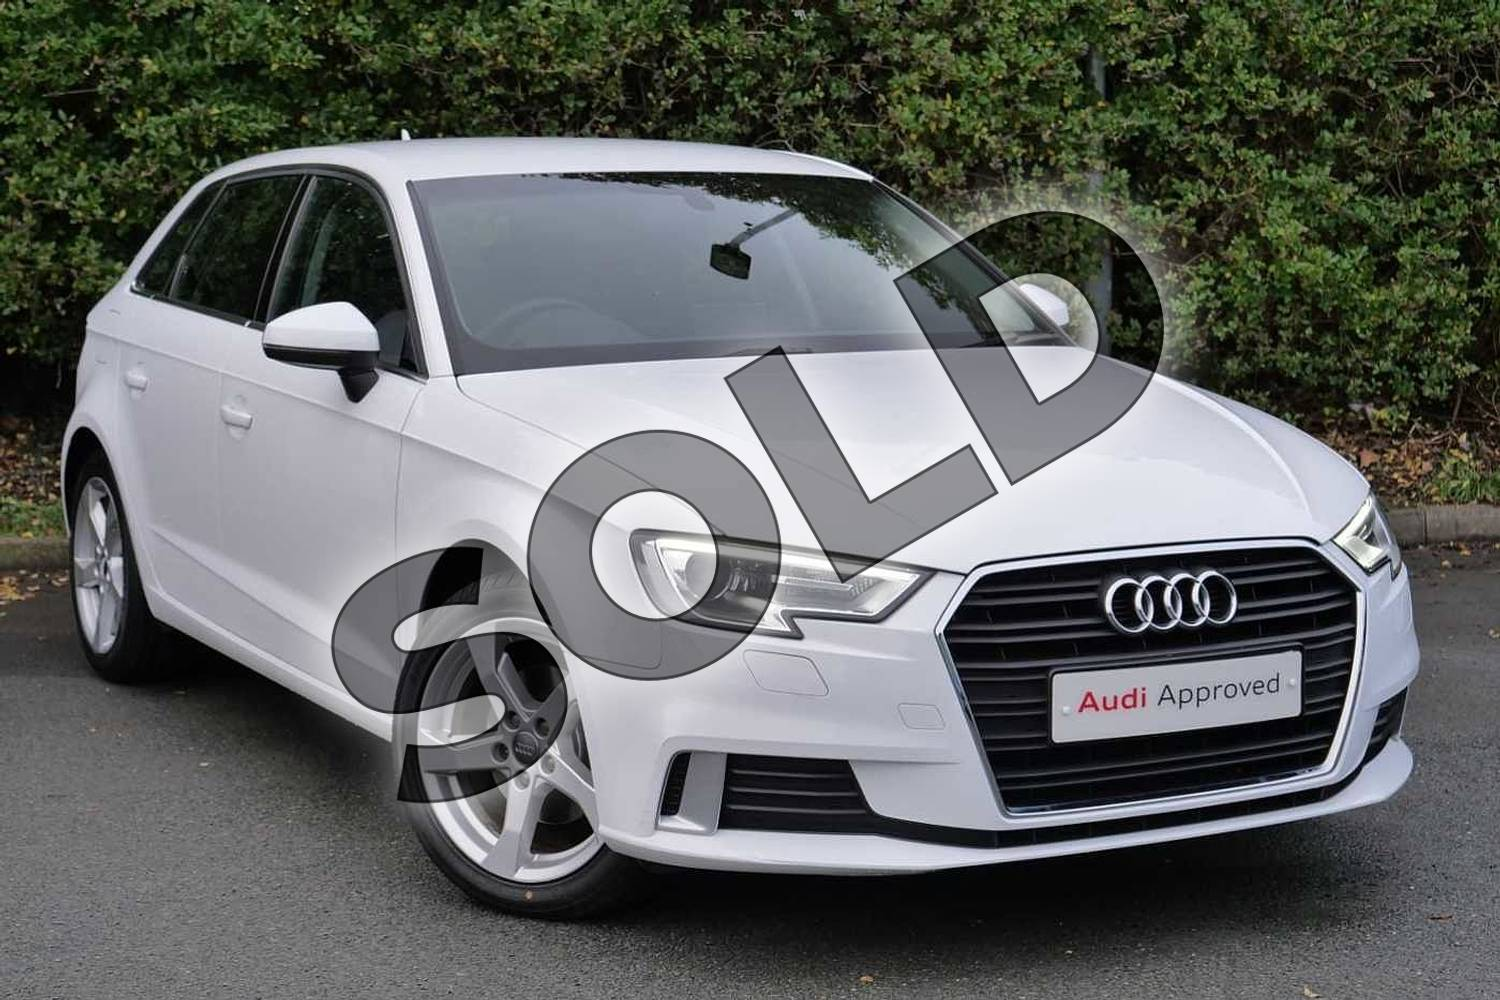 2018 Audi A3 Sportback 1.5 TFSI Sport 5dr S Tronic in Ibis White at Worcester Audi